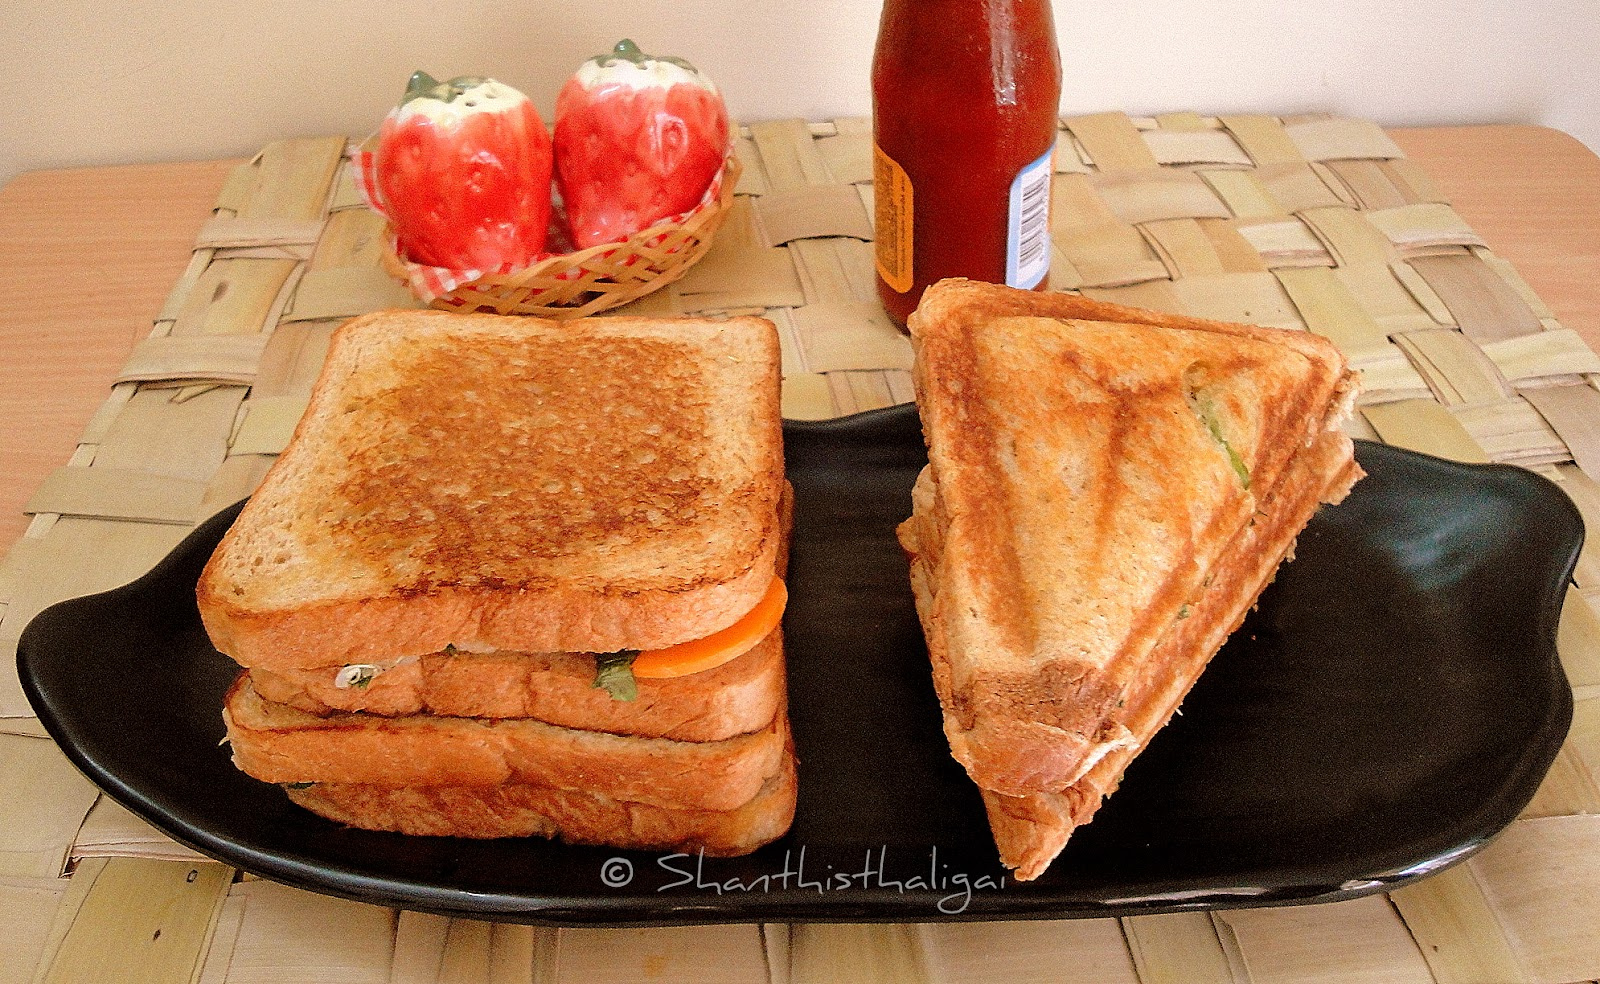 QUINOA AND SWEET POTATO TOASTED SANDWICH, QUINOA AND SWEET POTATO SANDWICH TOAST, Quinoa sweet potato sandwich recipe, Sandwich with quinoa sweet potato filling,